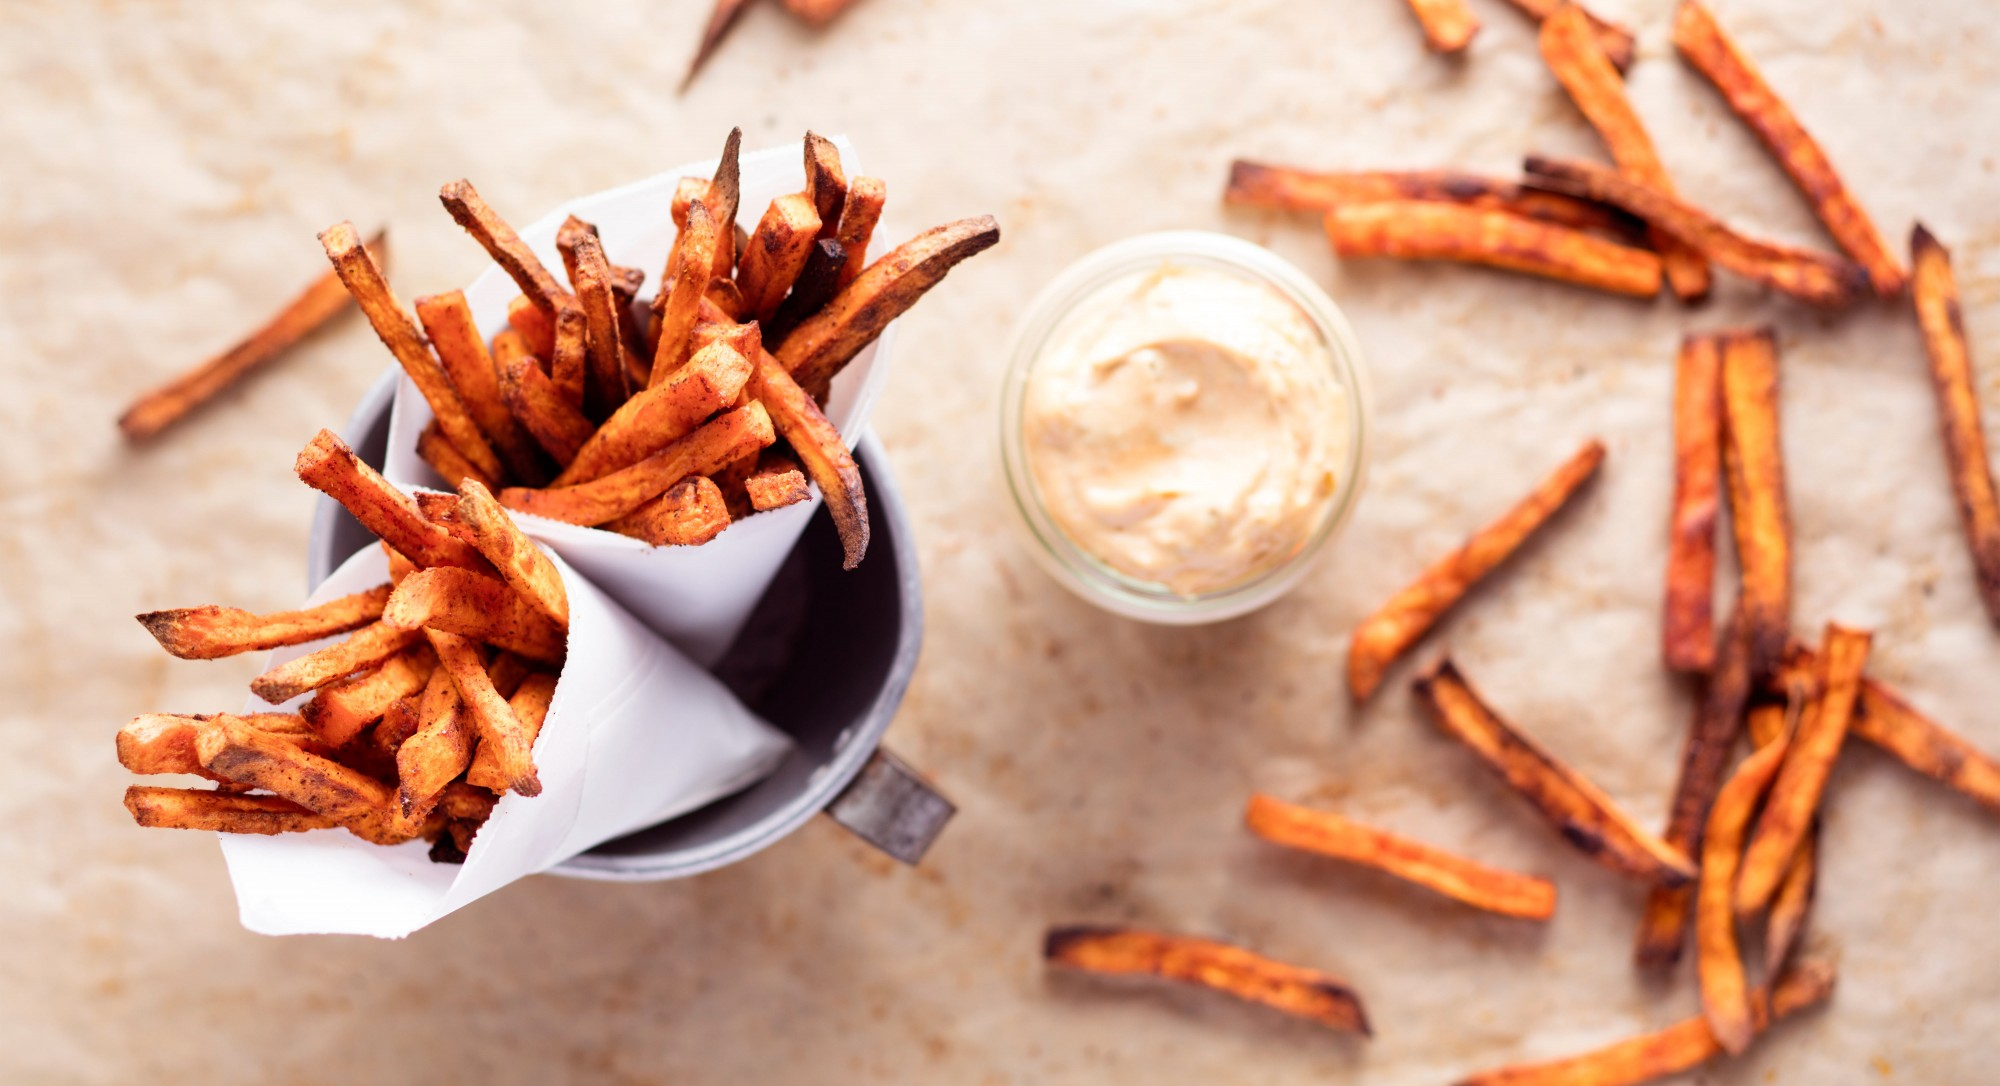 Spicy Sweet Potato Fries With Chipotle Mayonnaise Recipe